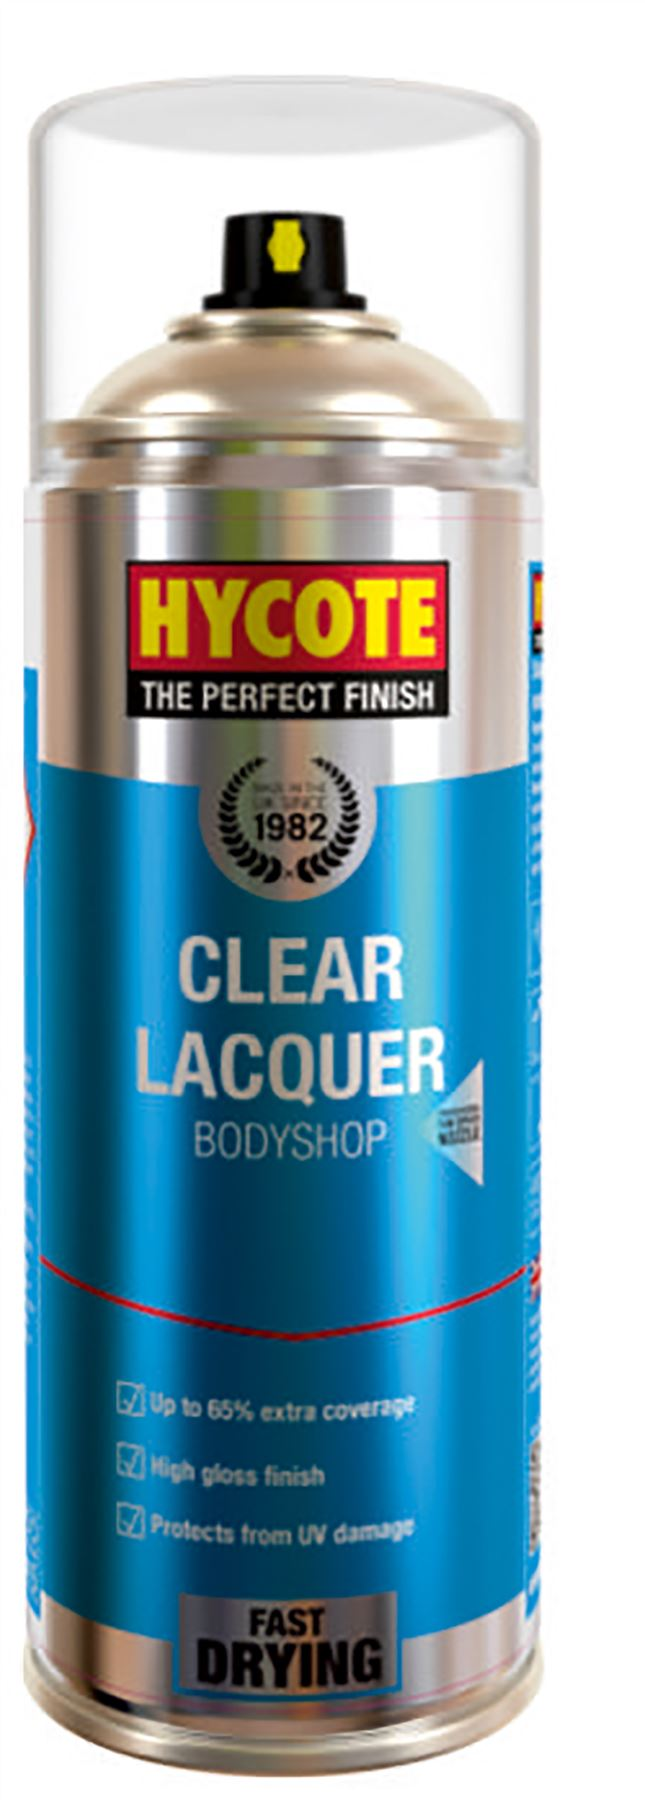 Hycote Bodyshop Clear Lacquer - 400ml